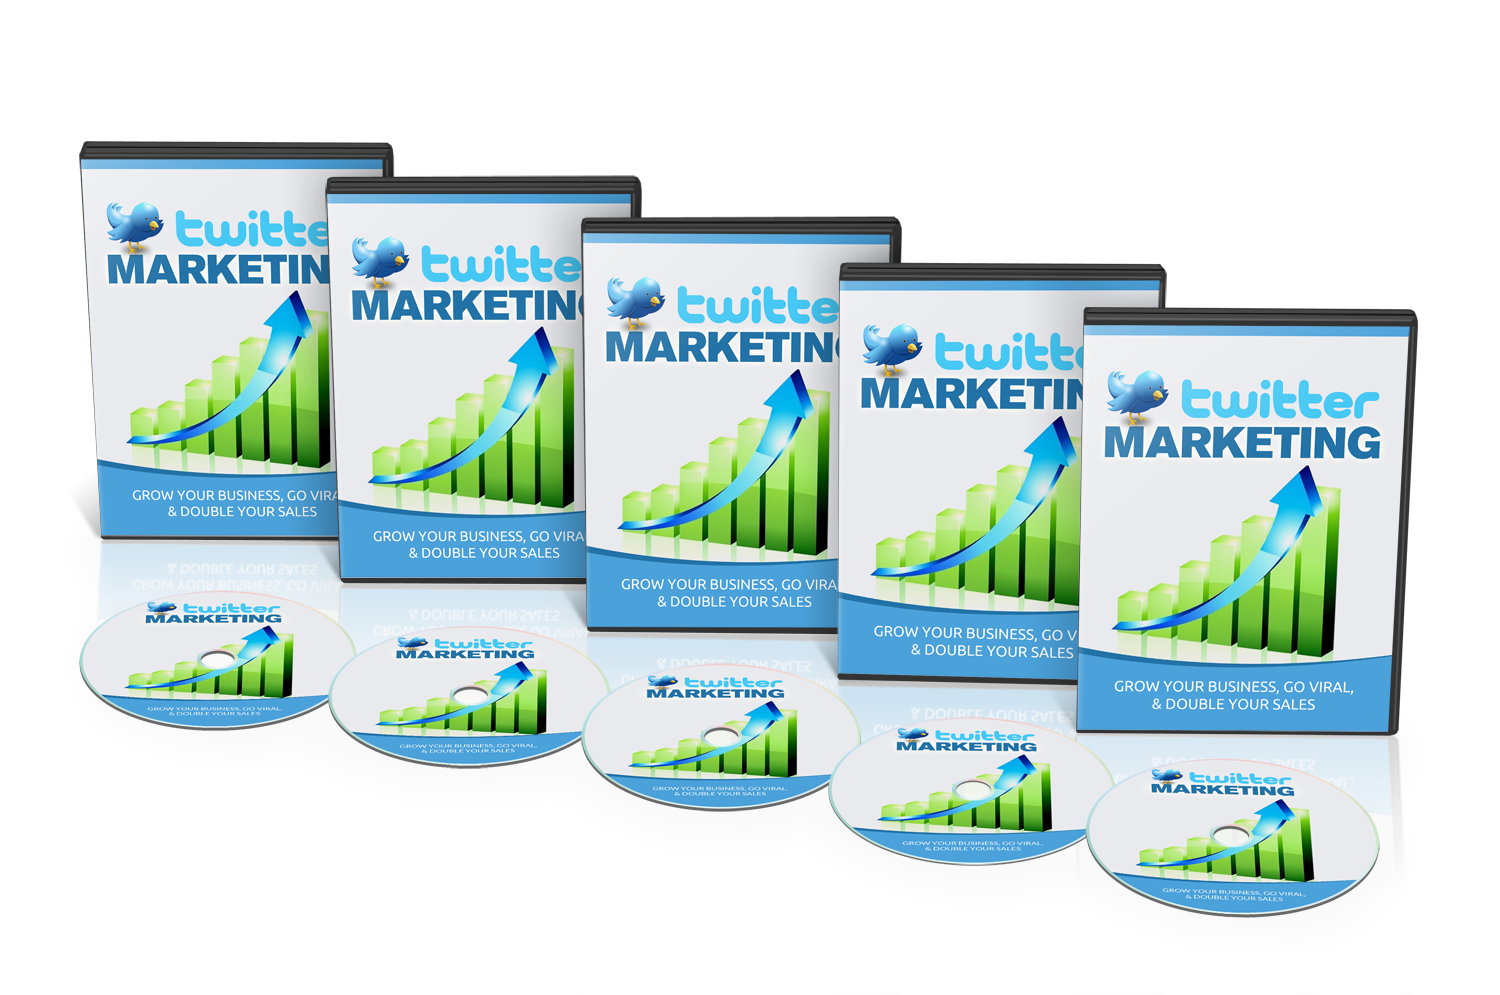 Twitter Marketing Training Course - Marketing Solved